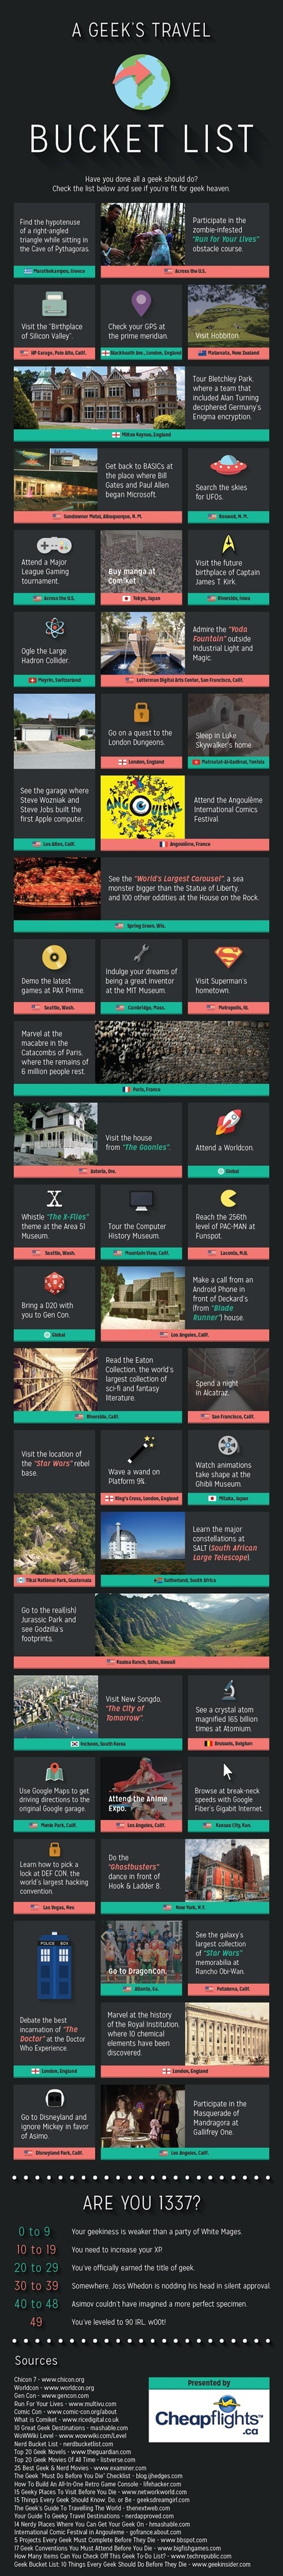 geek Travel infographic - 8005442560